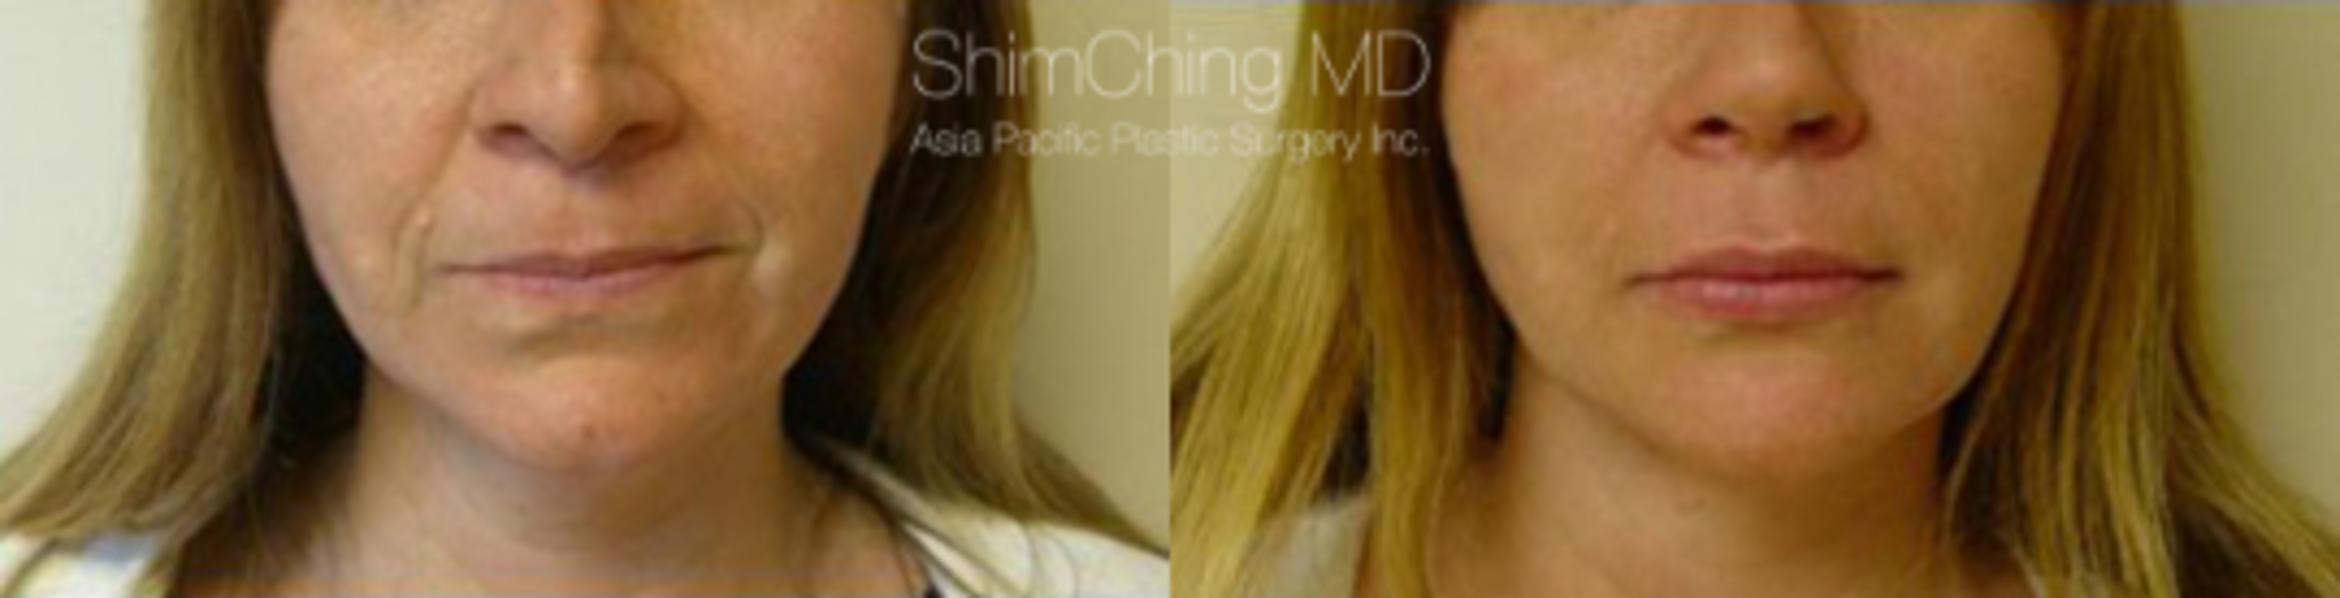 Chin Case 16 Before & After View #1 | Honolulu, HI | Shim Ching, MD: Asia Pacific Plastic Surgery